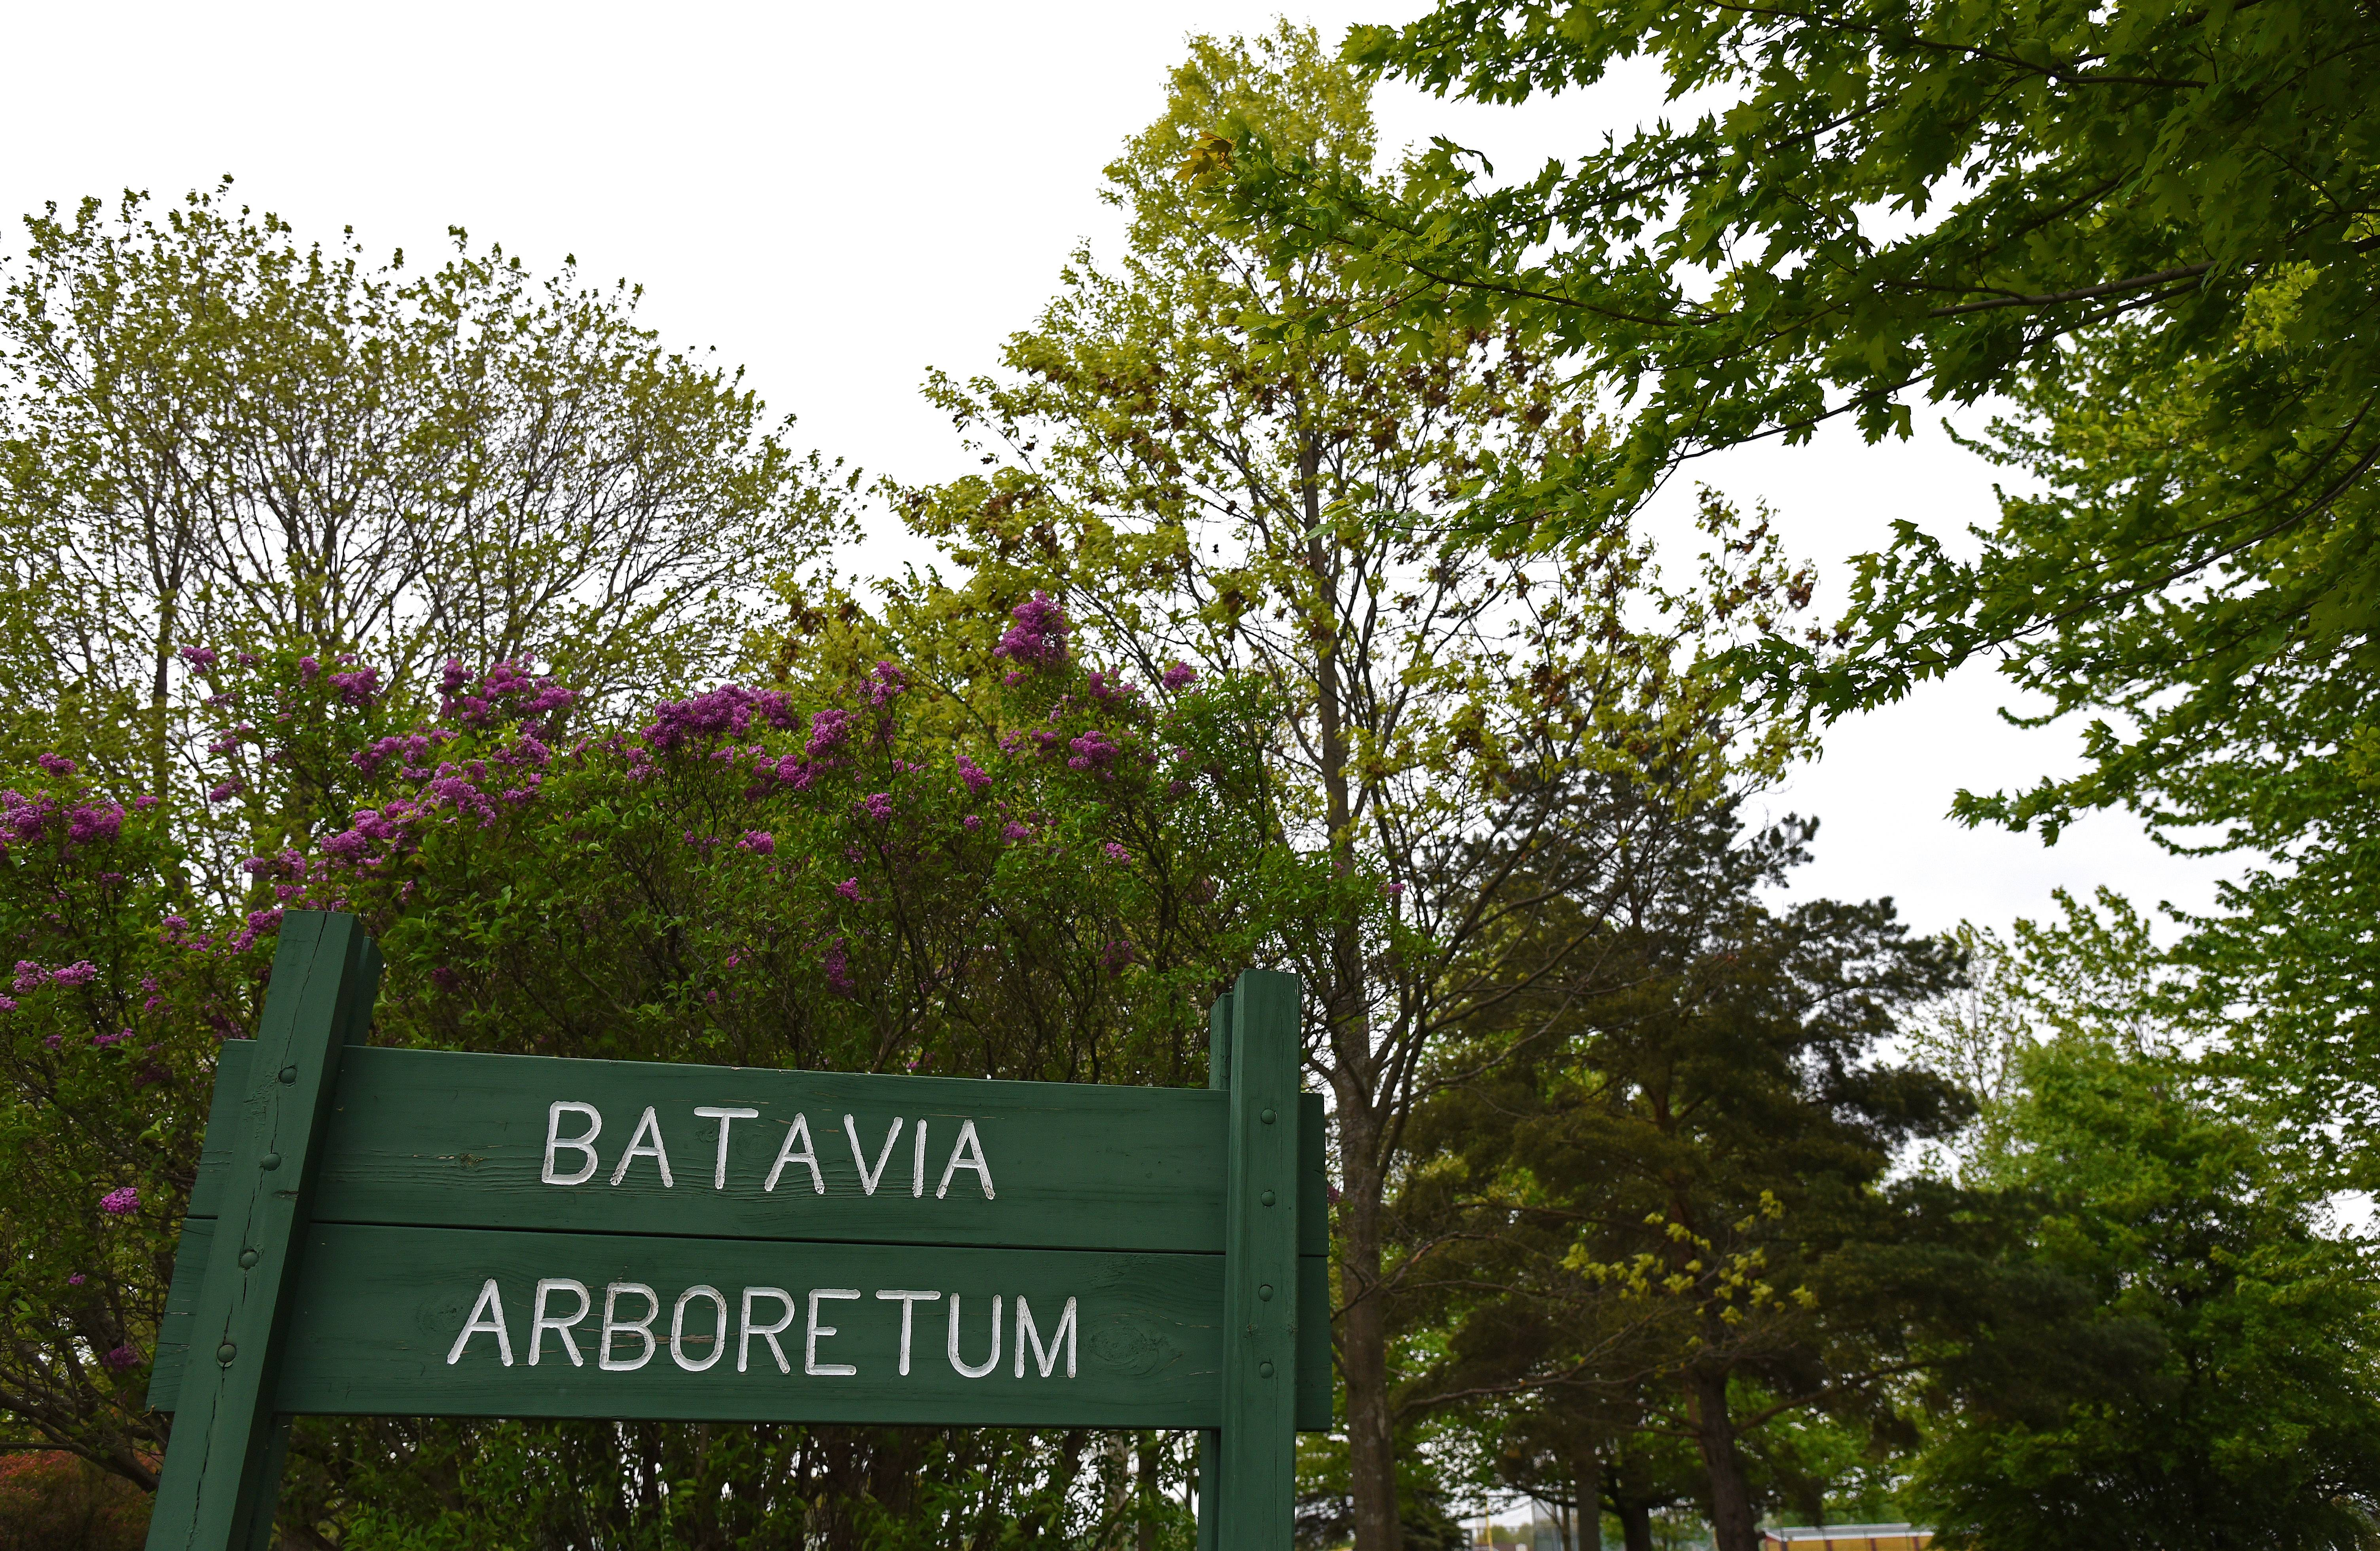 The Batavia group Value Our Trees has raised enough funds to place a plaque in the Batavia Arboretum. The plaque will document the names of those for whom memorial trees were planted in the arboretum 50 years ago.